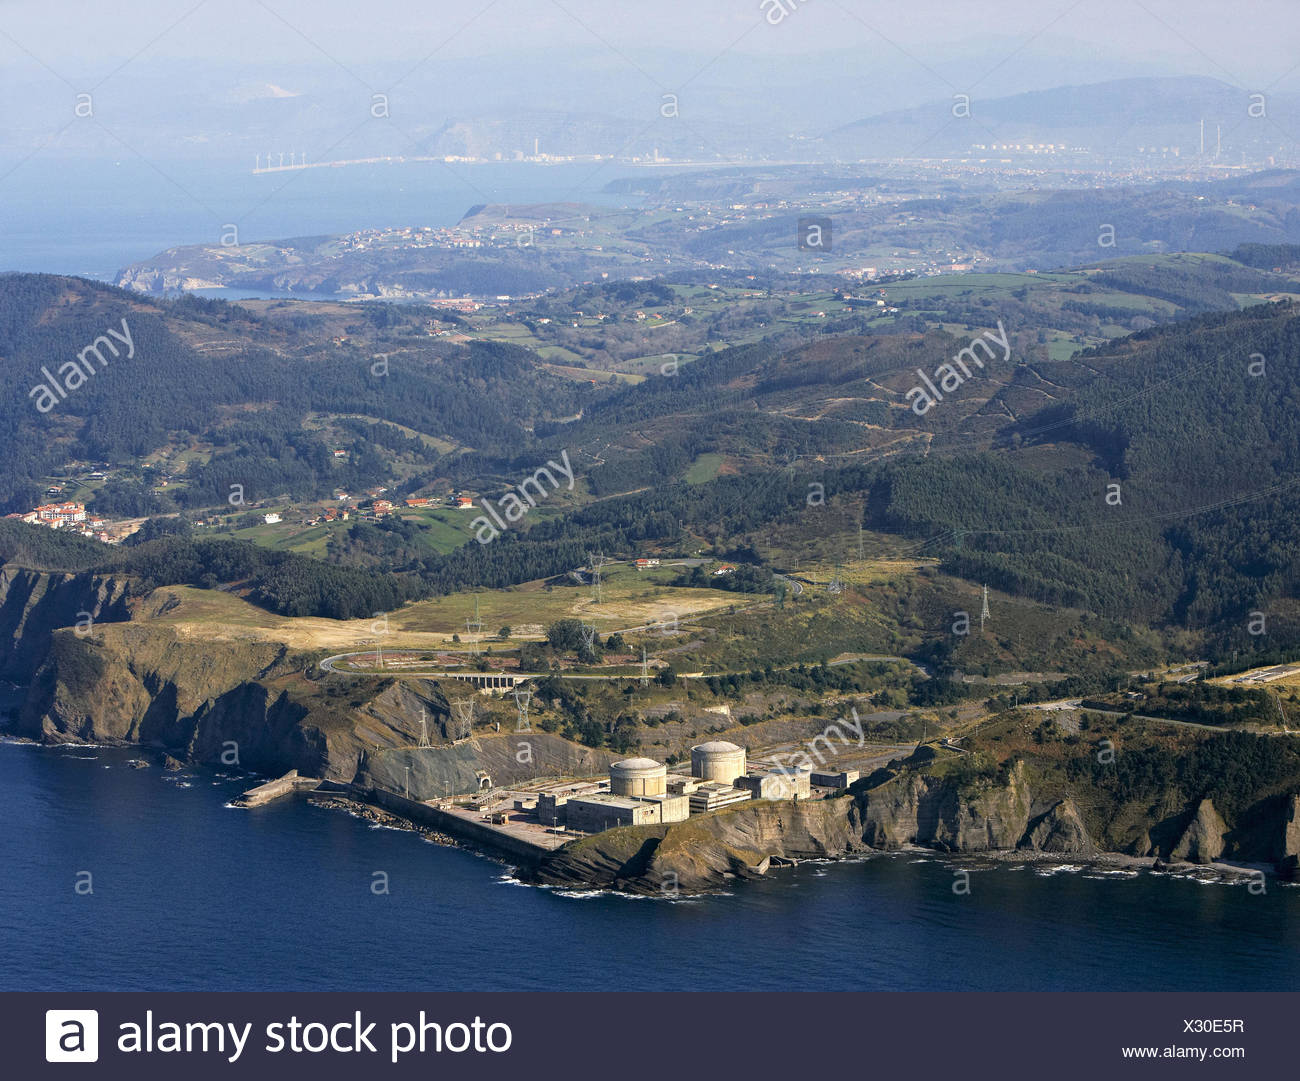 Unfnished nuclear Power Plant, Lemoiz, Biscay, Basque country, Spain - Stock Image